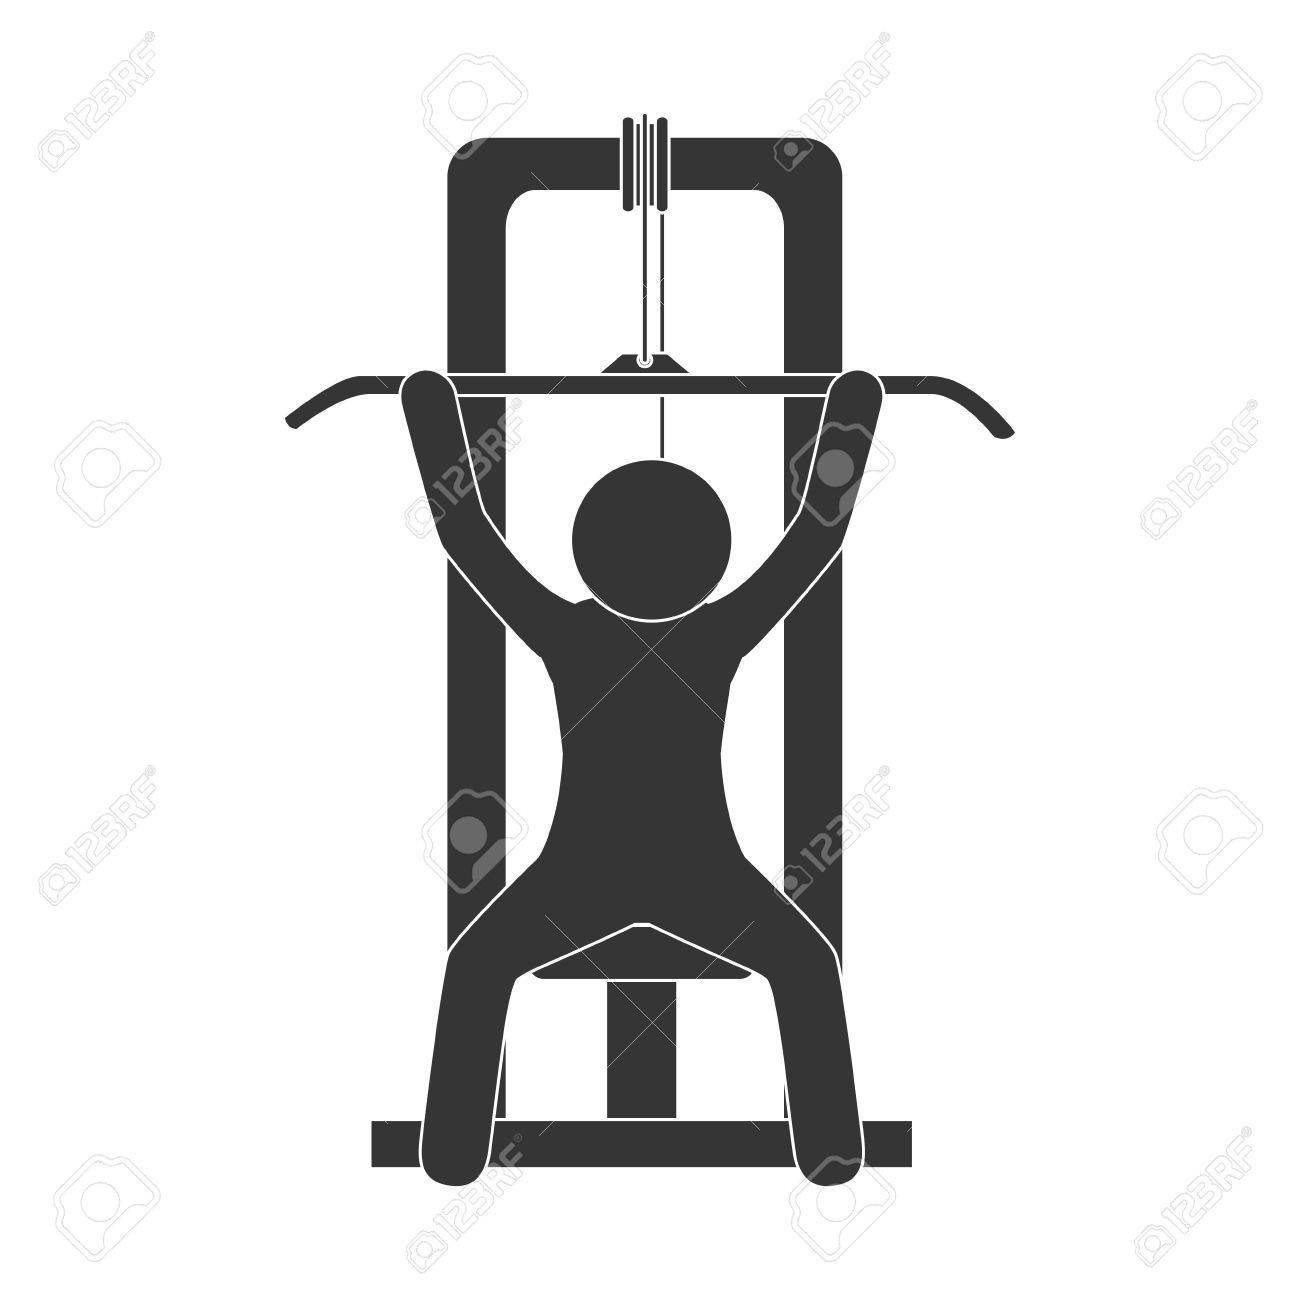 3069 Gym free clipart.